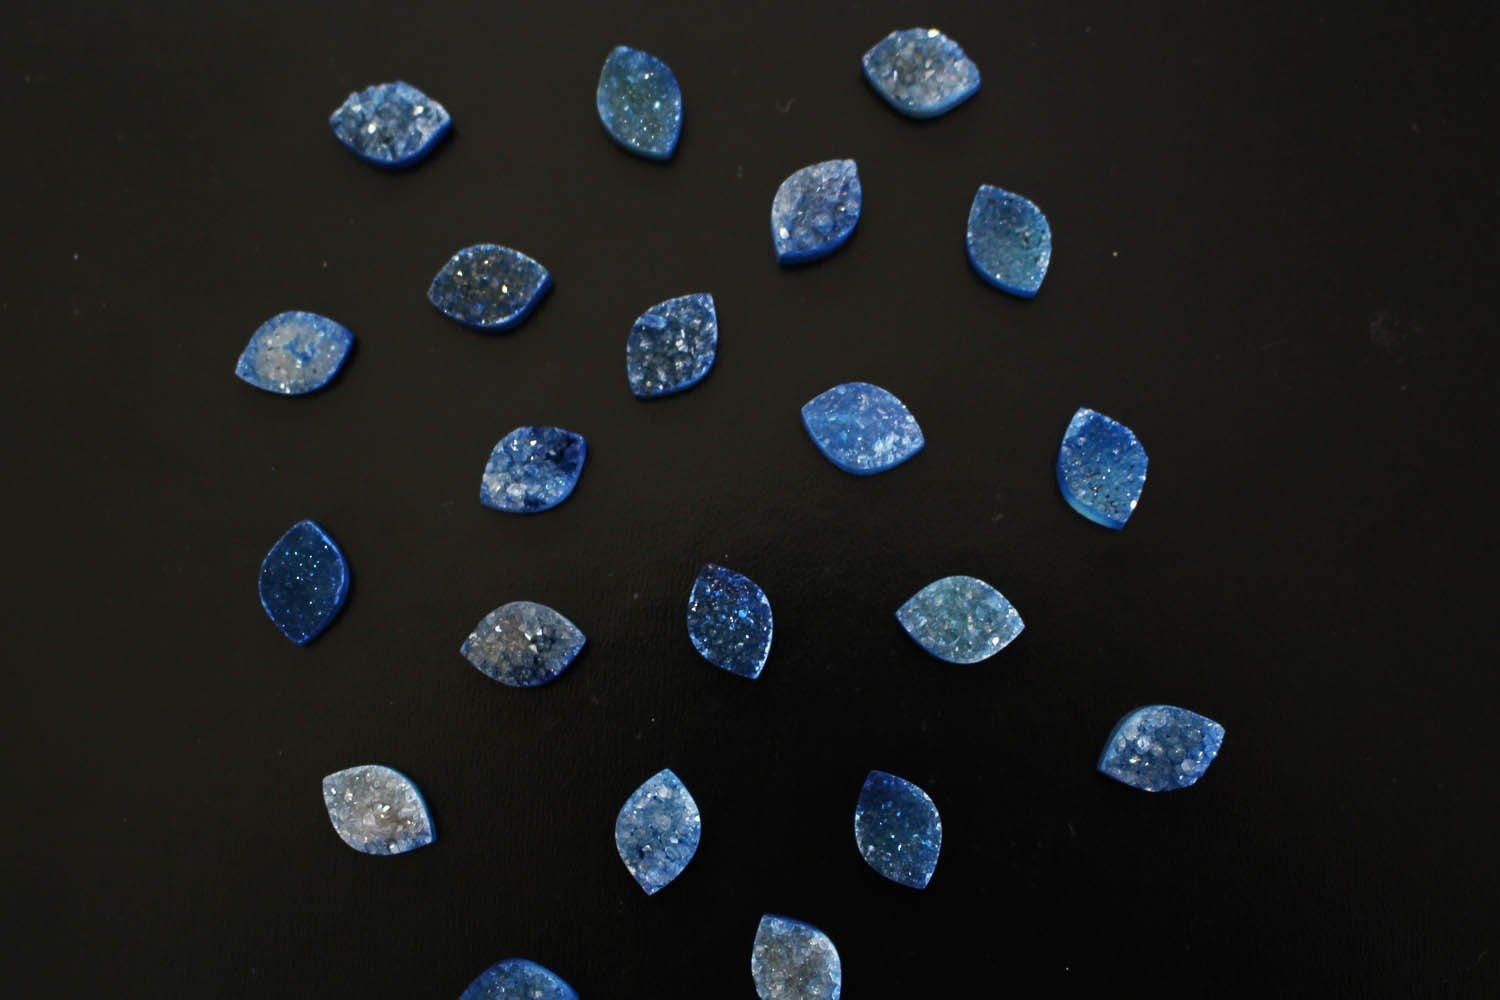 Cabochon - Blue Marquise Druzy Cabochon - Colorful Druzy Stone - Craft Supply - Perfect For Jewelry Making